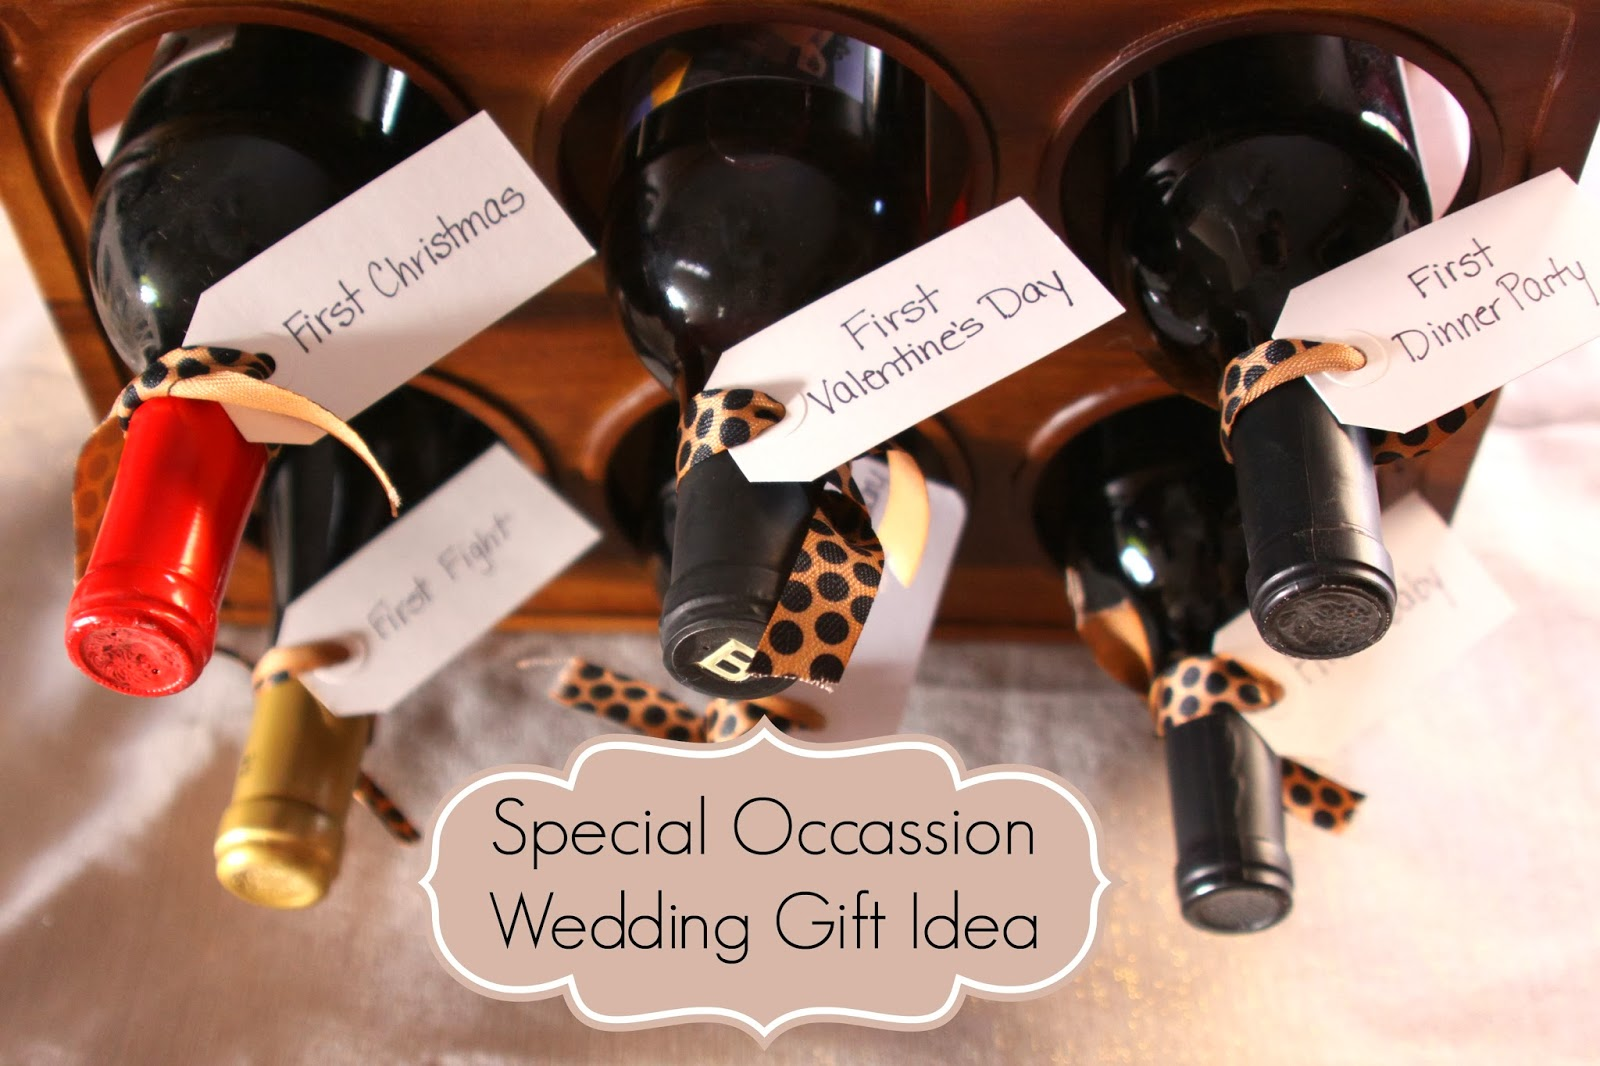 Wedding Gifts Ideas For Sister : ... Family: Special Day Wedding Gift Idea & Target Wedding Registry